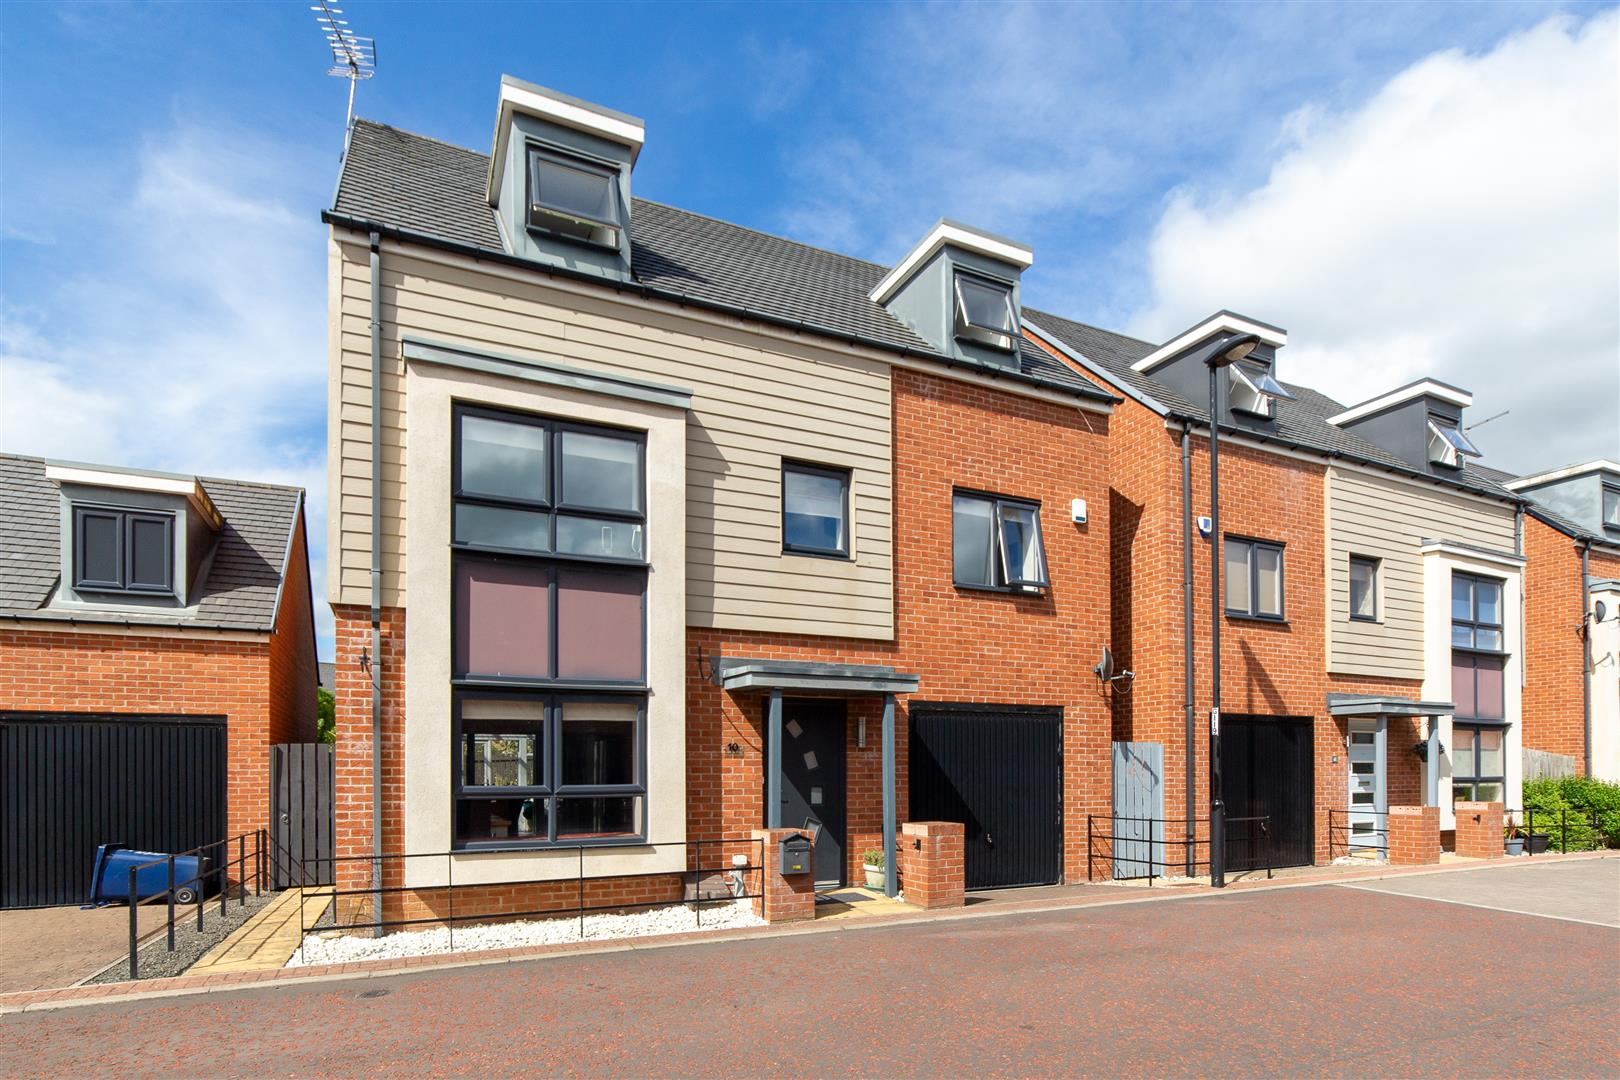 5 bed detached house for sale in Kimmerstone Road, Newcastle Upon Tyne, NE13